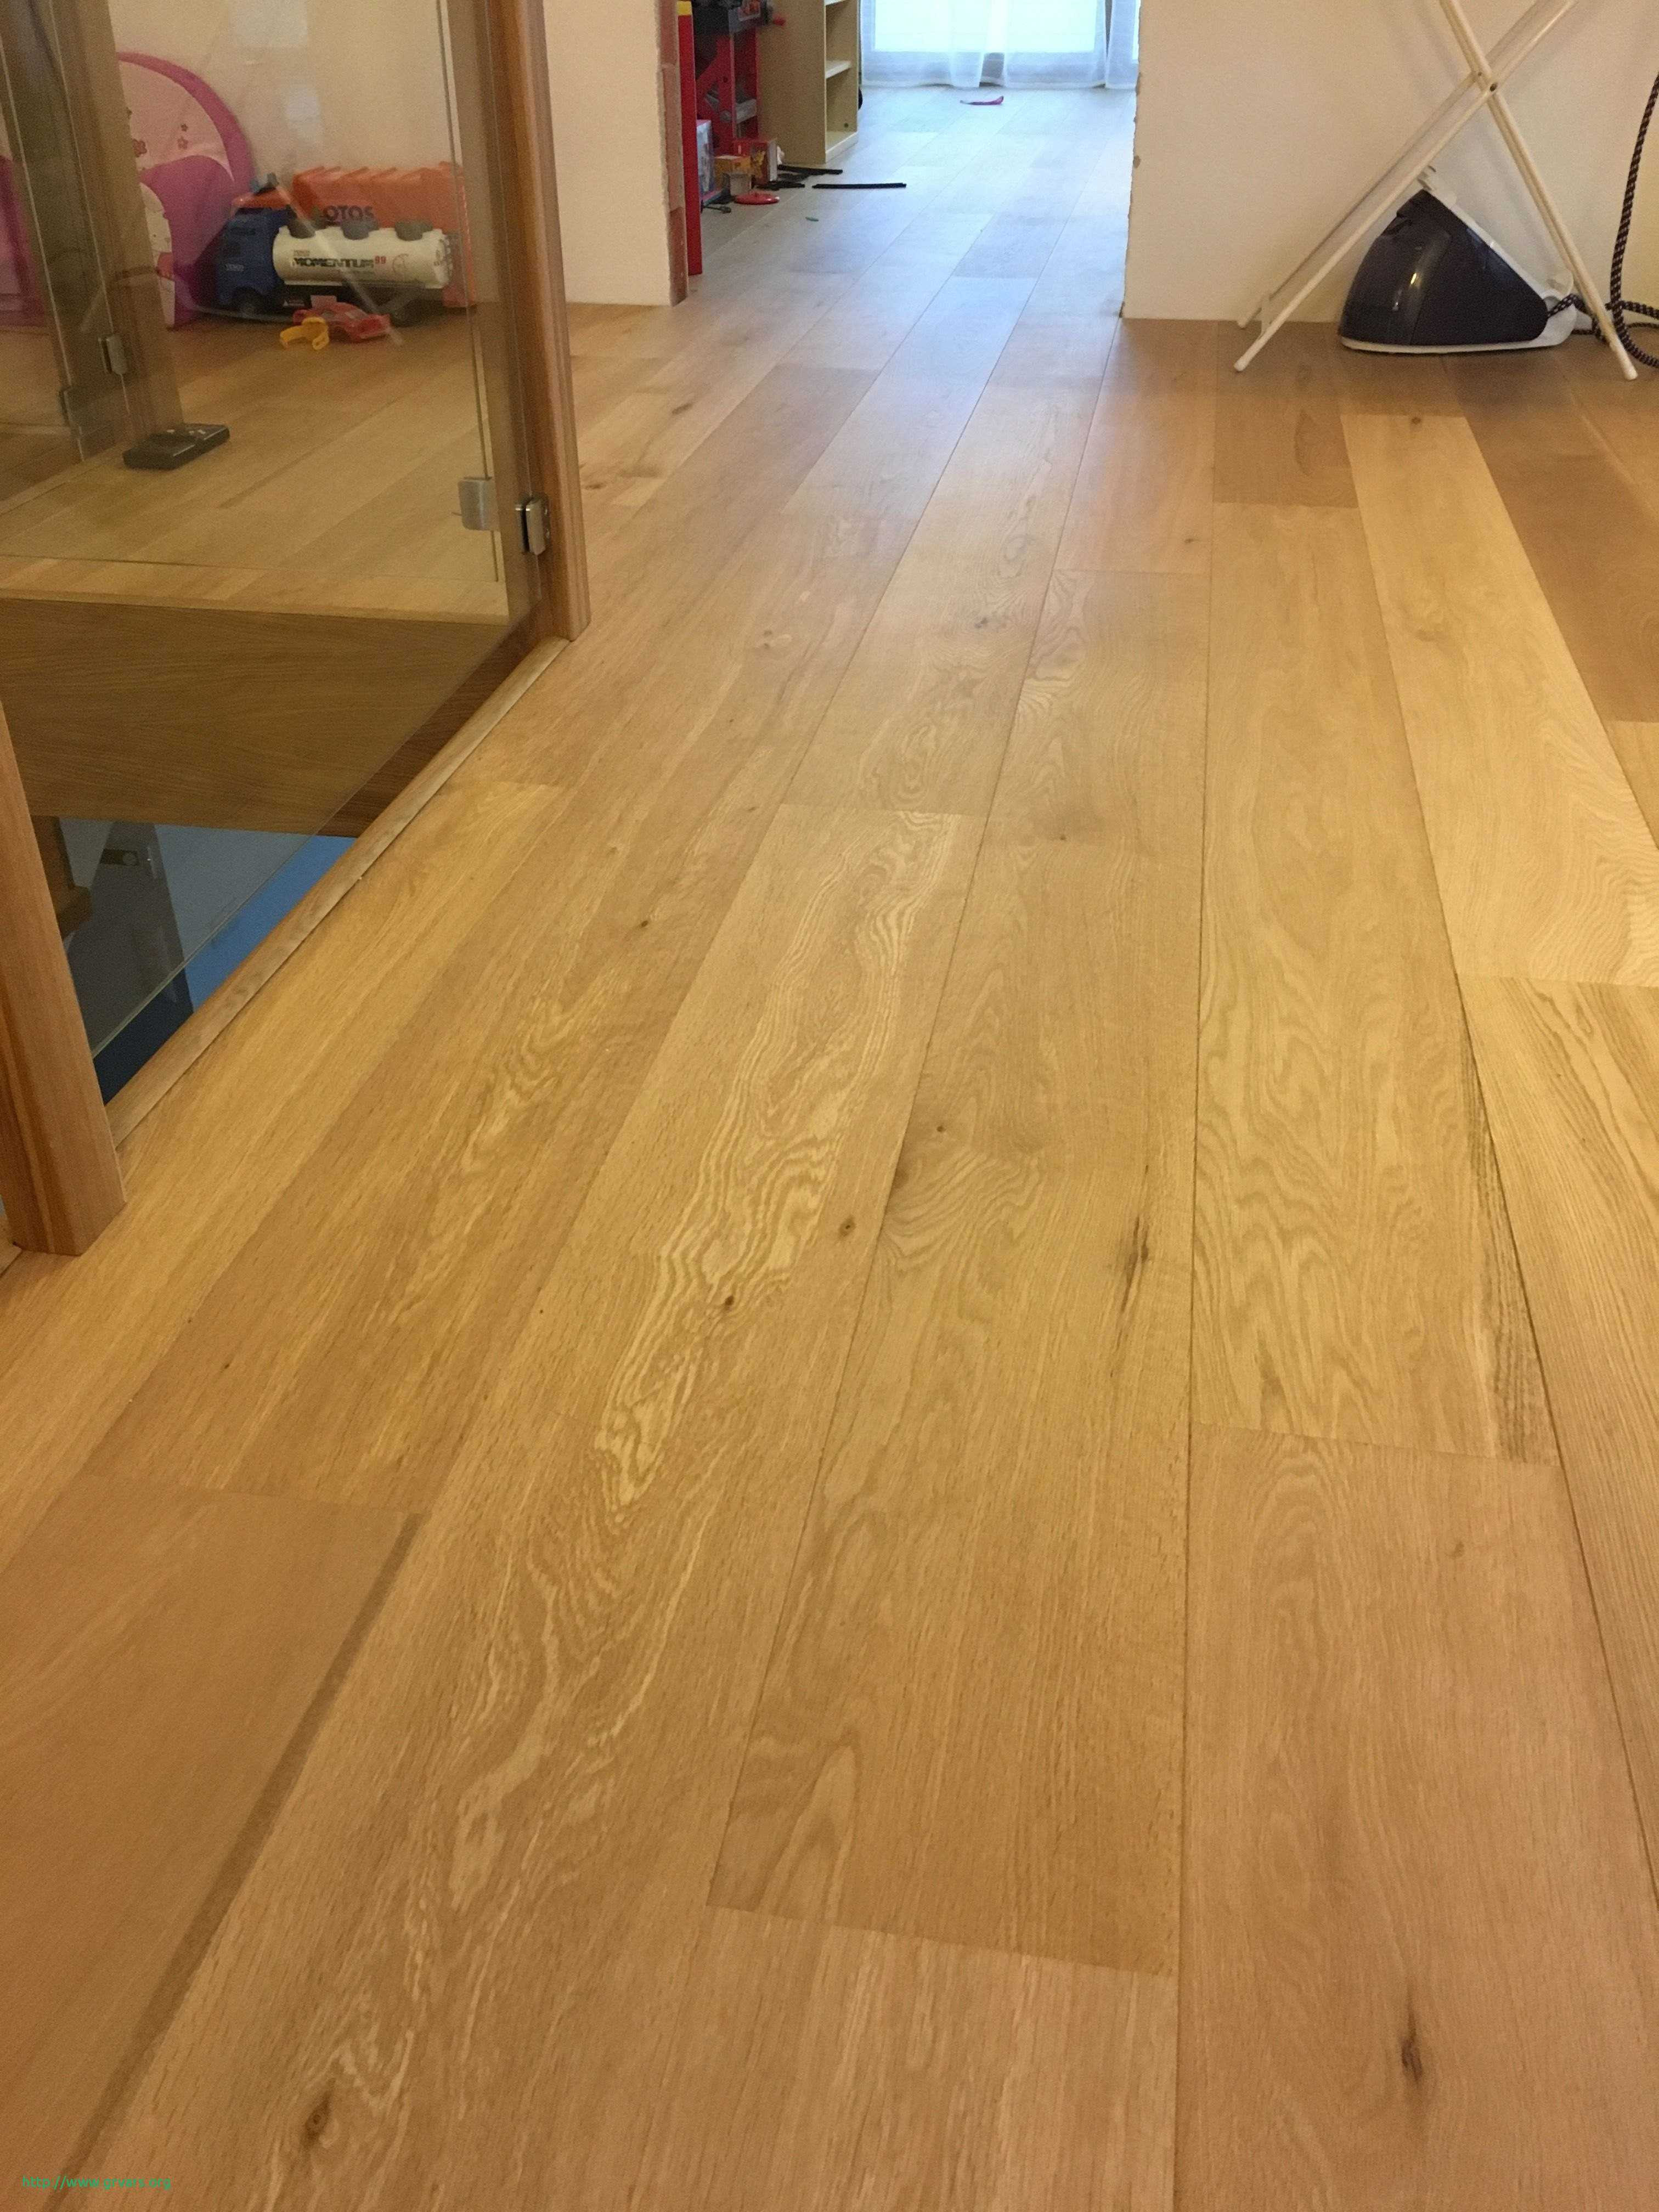 how much does hardwood floor refinishing cost sq ft of 25 impressionnant how much does it cost to redo hardwood floors within cost to refinish hardwood floors hardwood or engineered flooring which is better podemosleganes